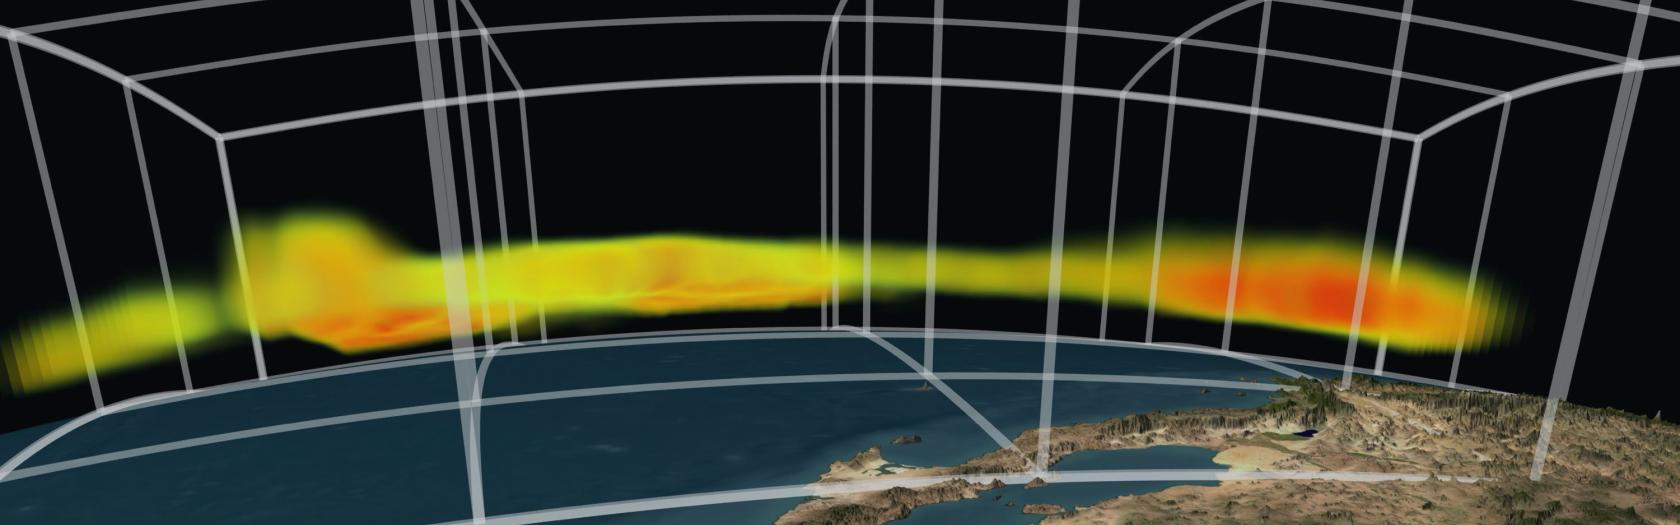 NASA's Atmospheric Infrared Sounder instrument reveals 3-D structure of a storm's water vapor content